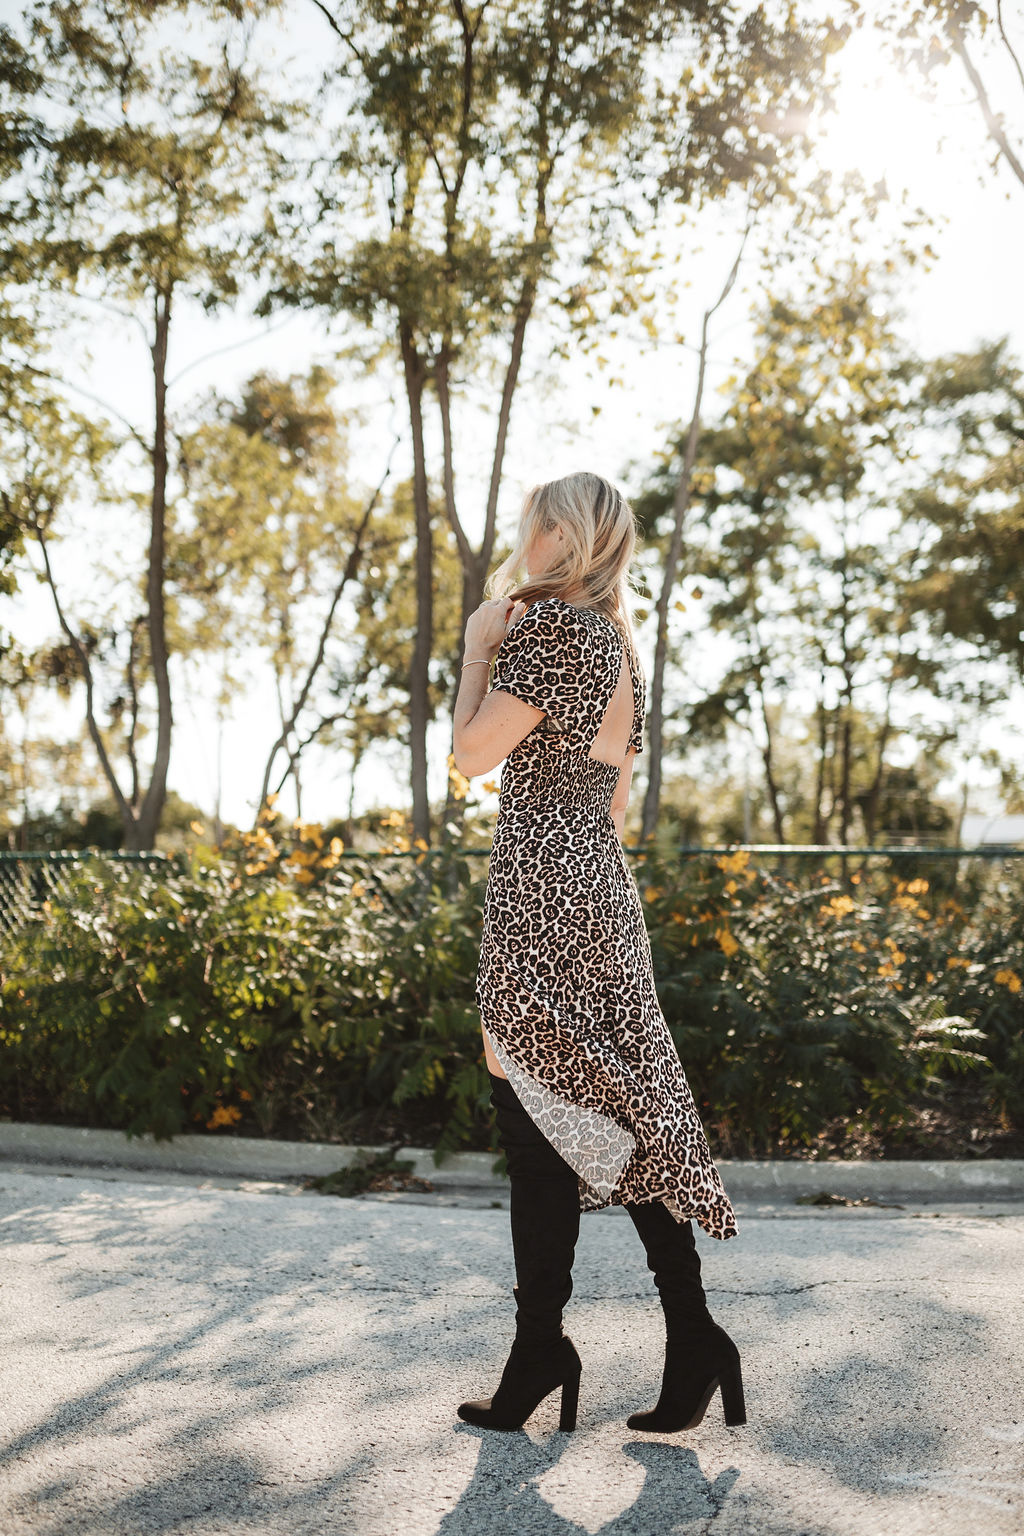 Leopard print dress in midi length